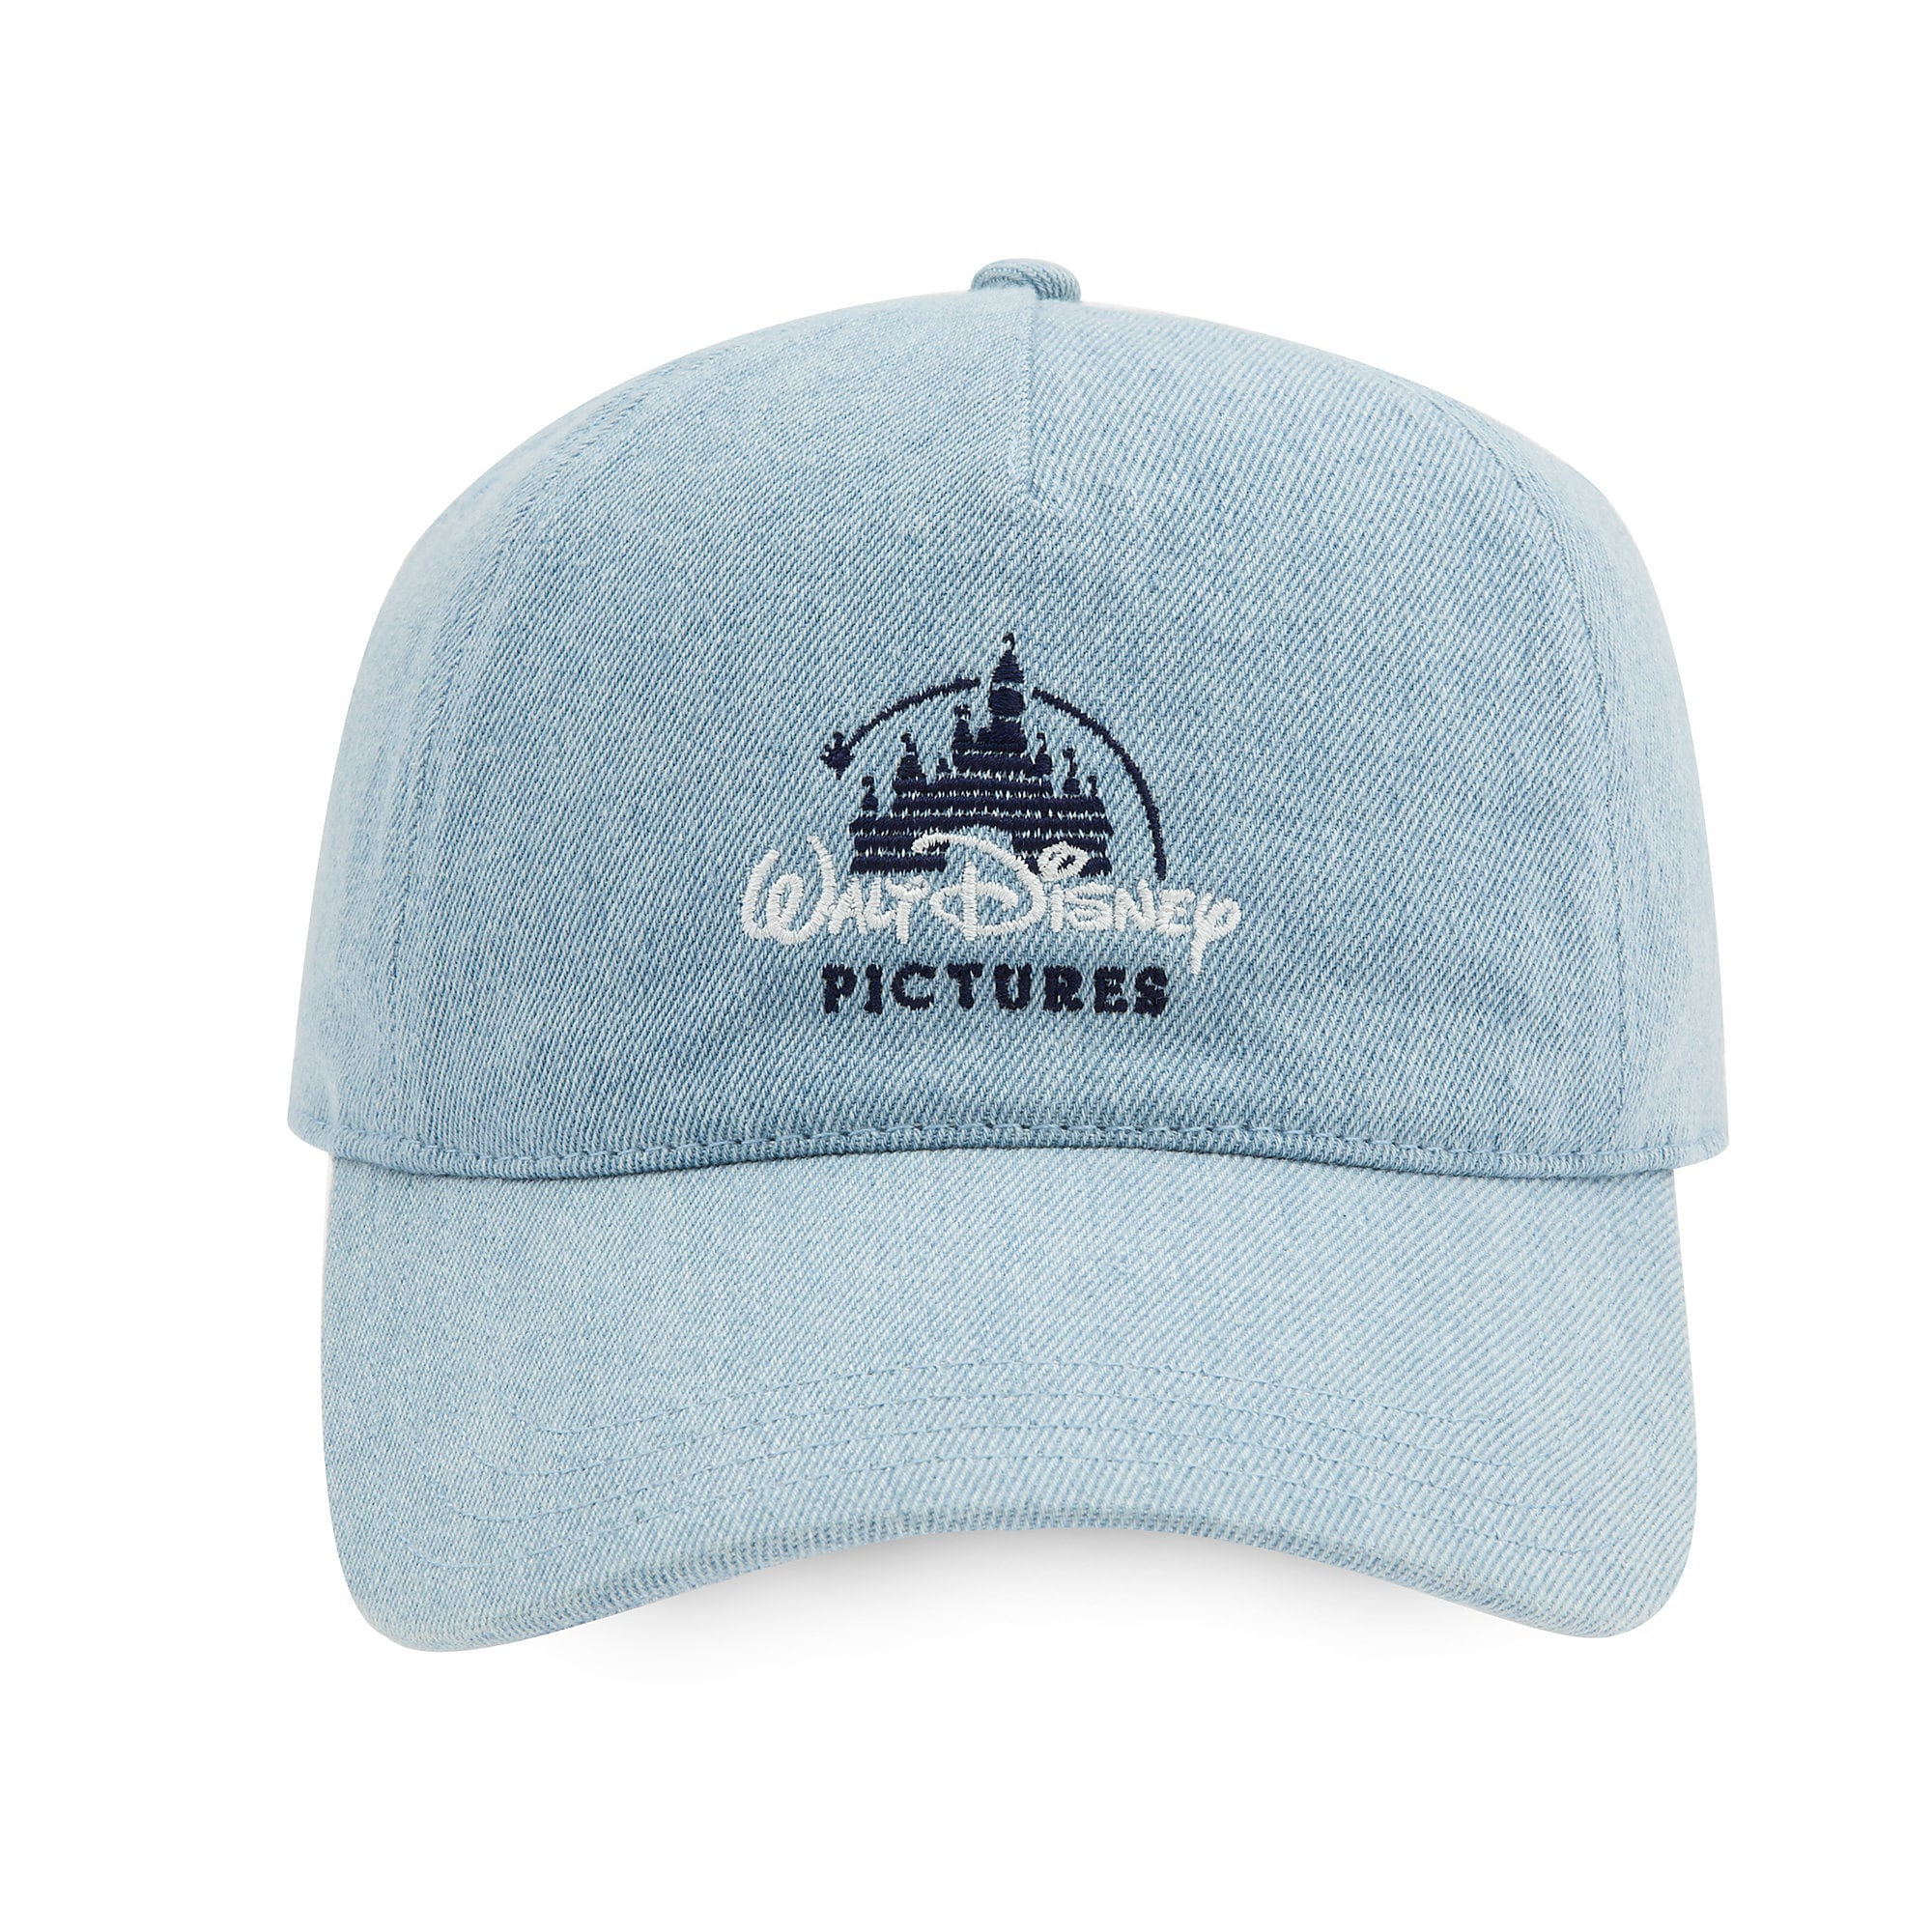 b07568e0d5cd0 norway product image of walt disney pictures baseball cap for adults 1  81efa 95d7d